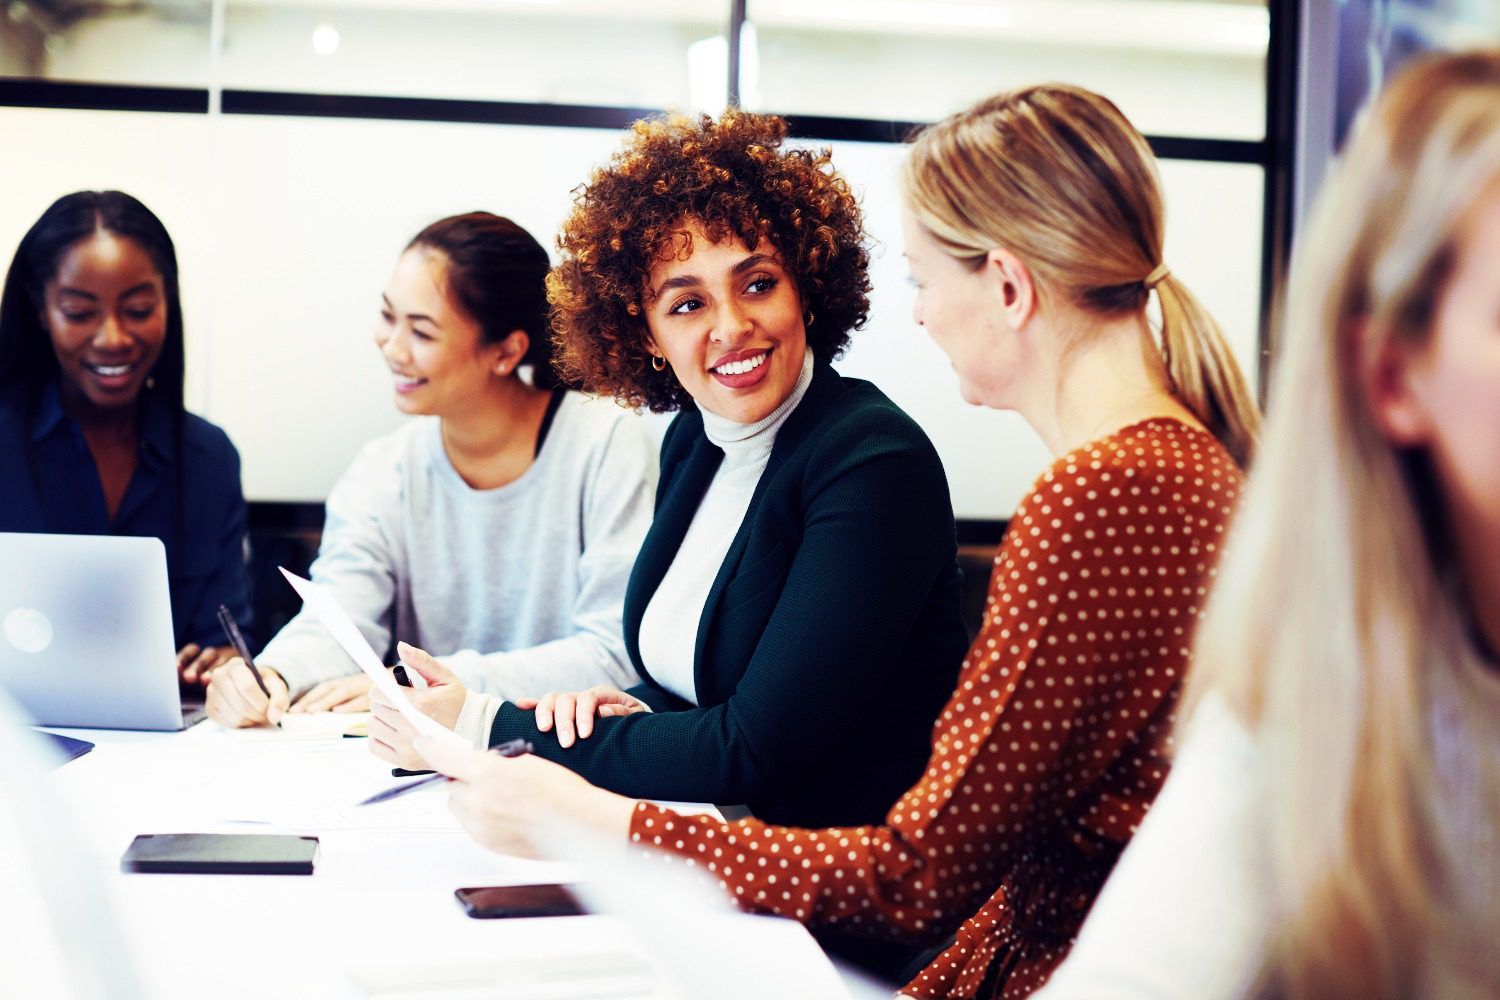 Women sitting around a desk at work - all talking and smiling. How can learning new languages help you and your career?